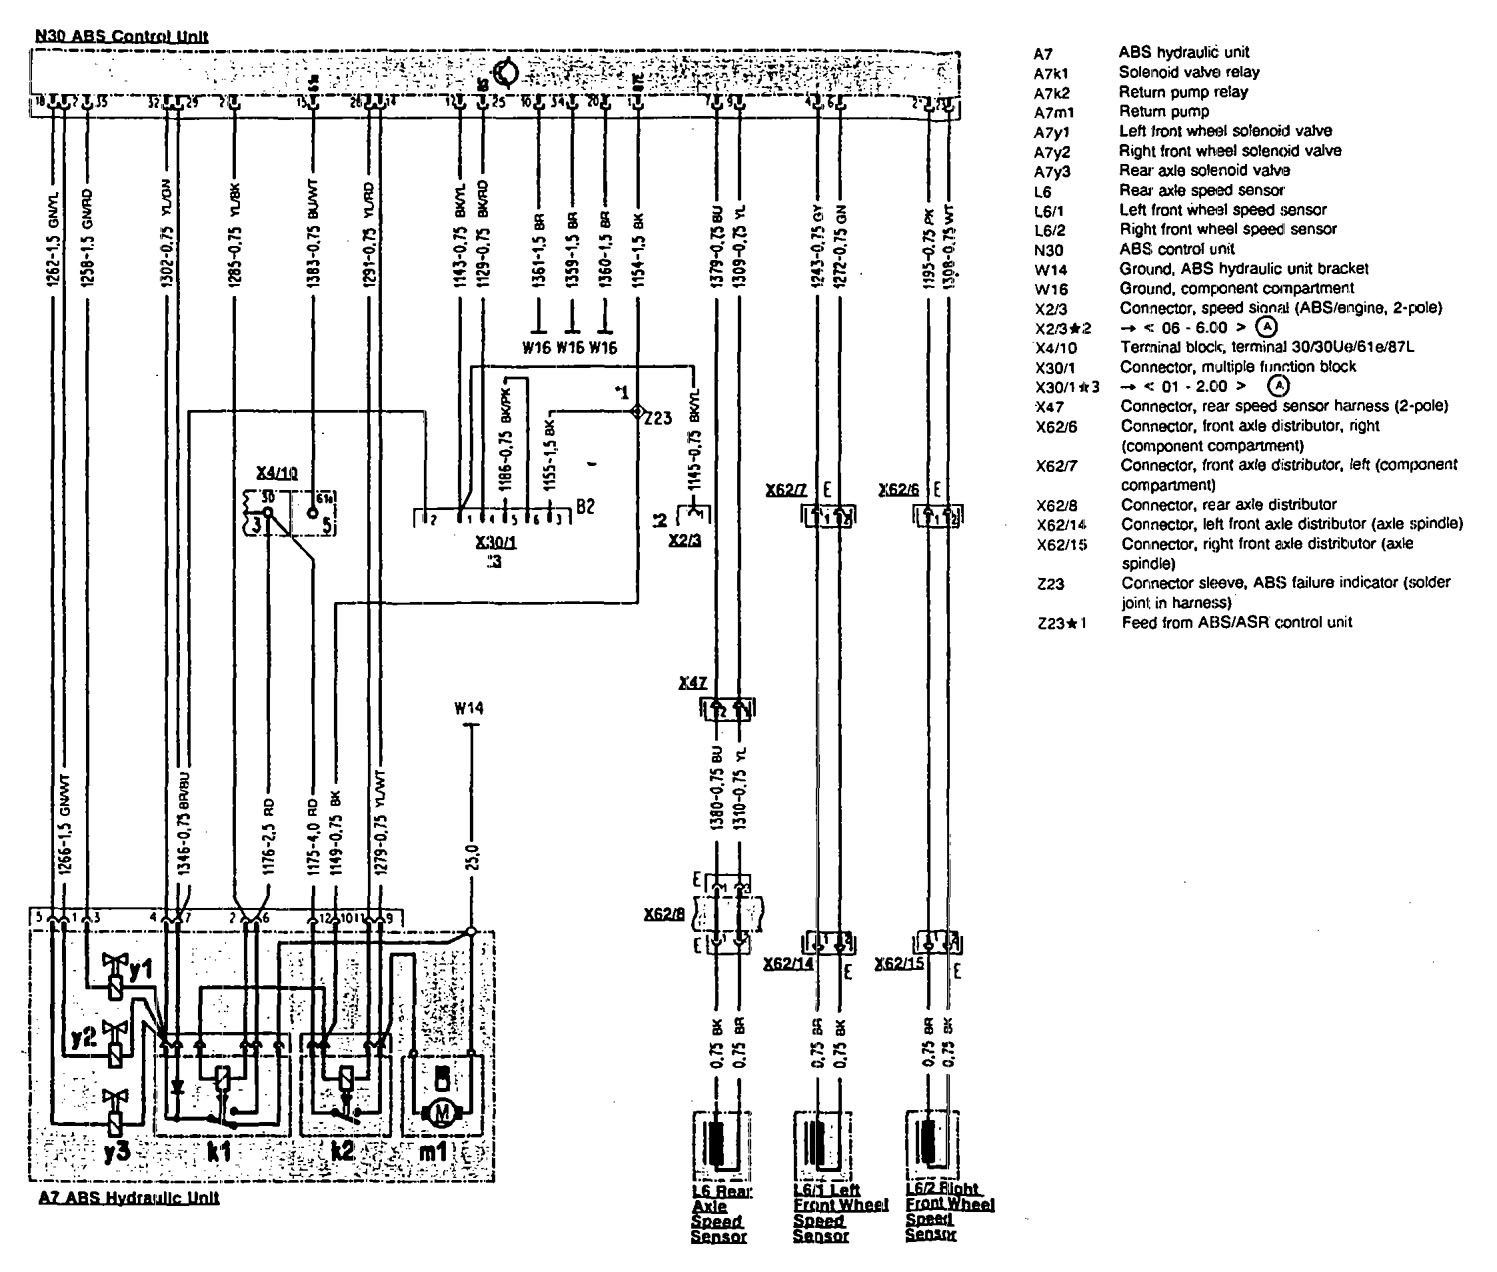 bmw 750li abs wiring diagram another blog about wiring diagram u2022 rh ok2  infoservice ru